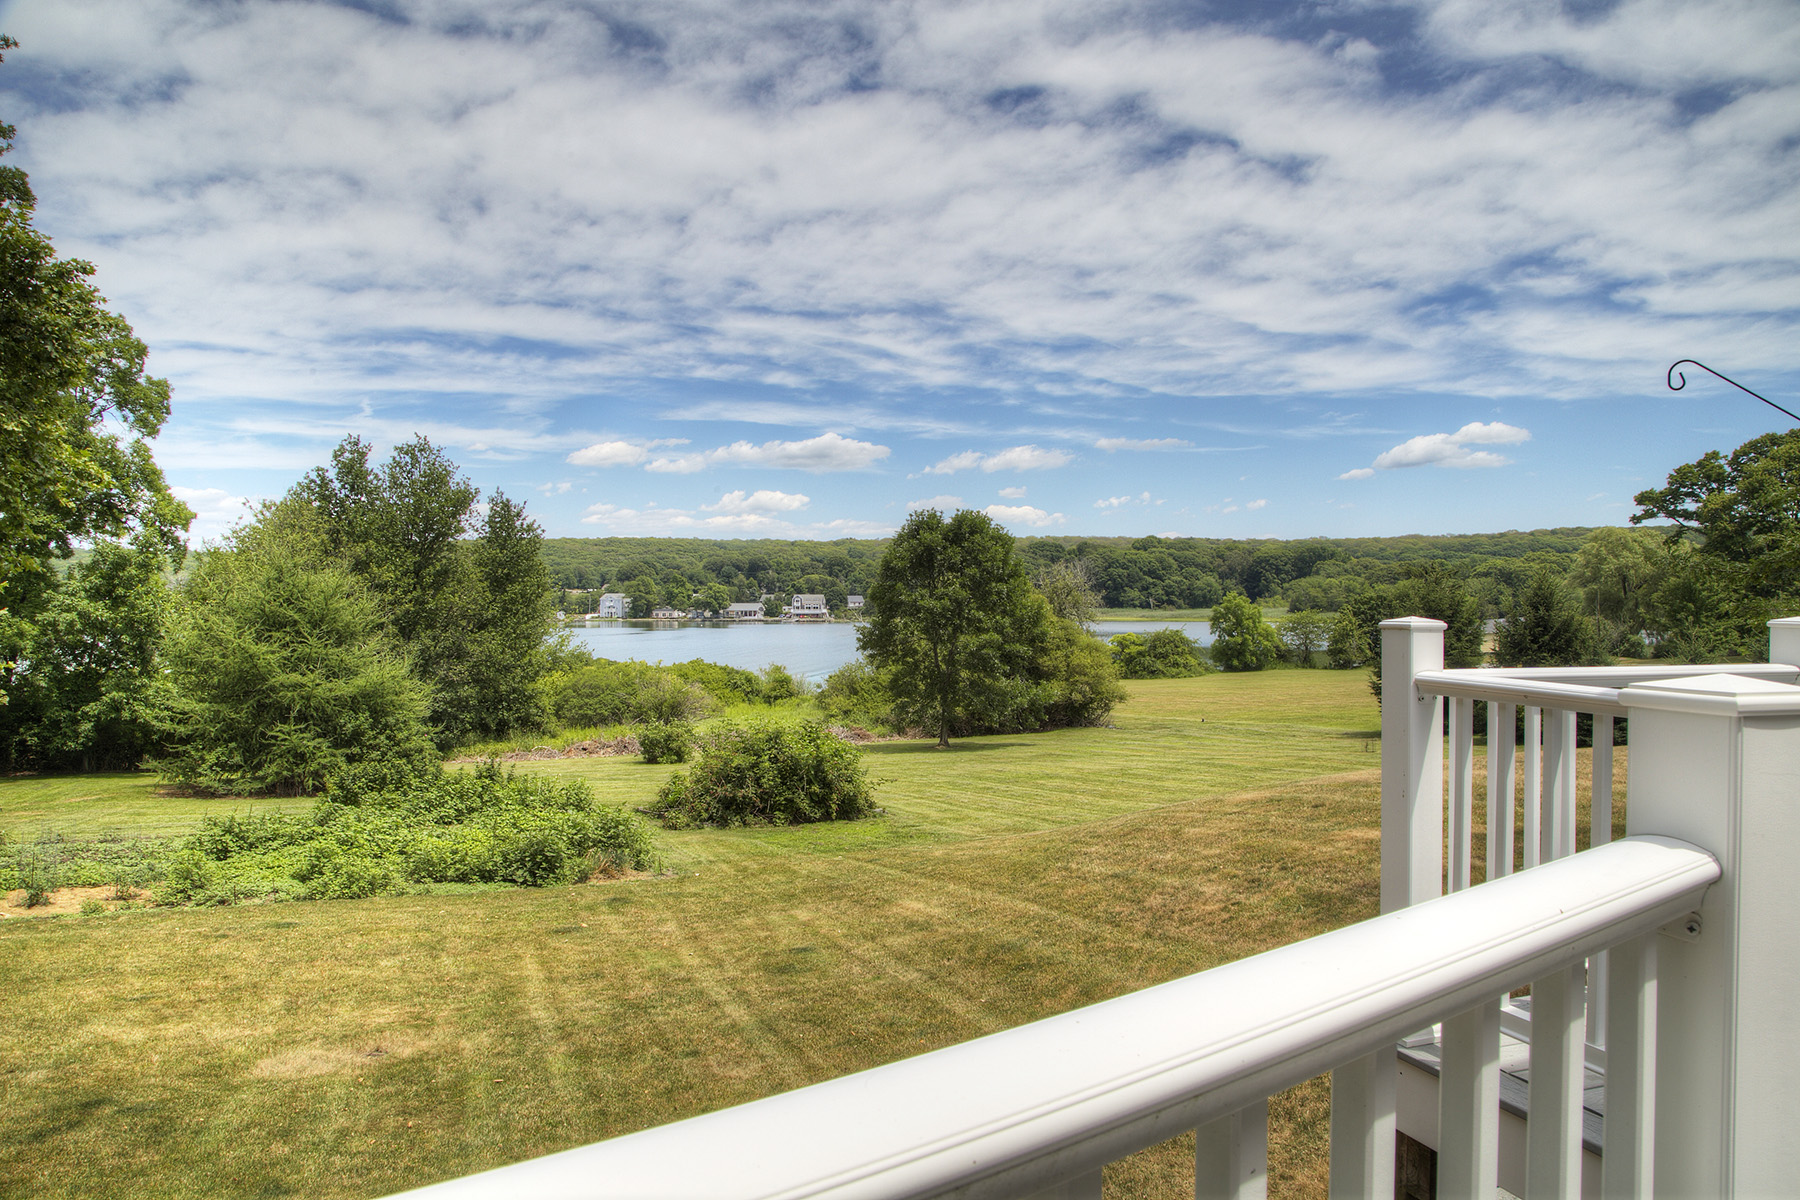 Additional photo for property listing at Nanaquaket Cape 556 Nanaquaket Road Tiverton, Rhode Island 02878 Estados Unidos